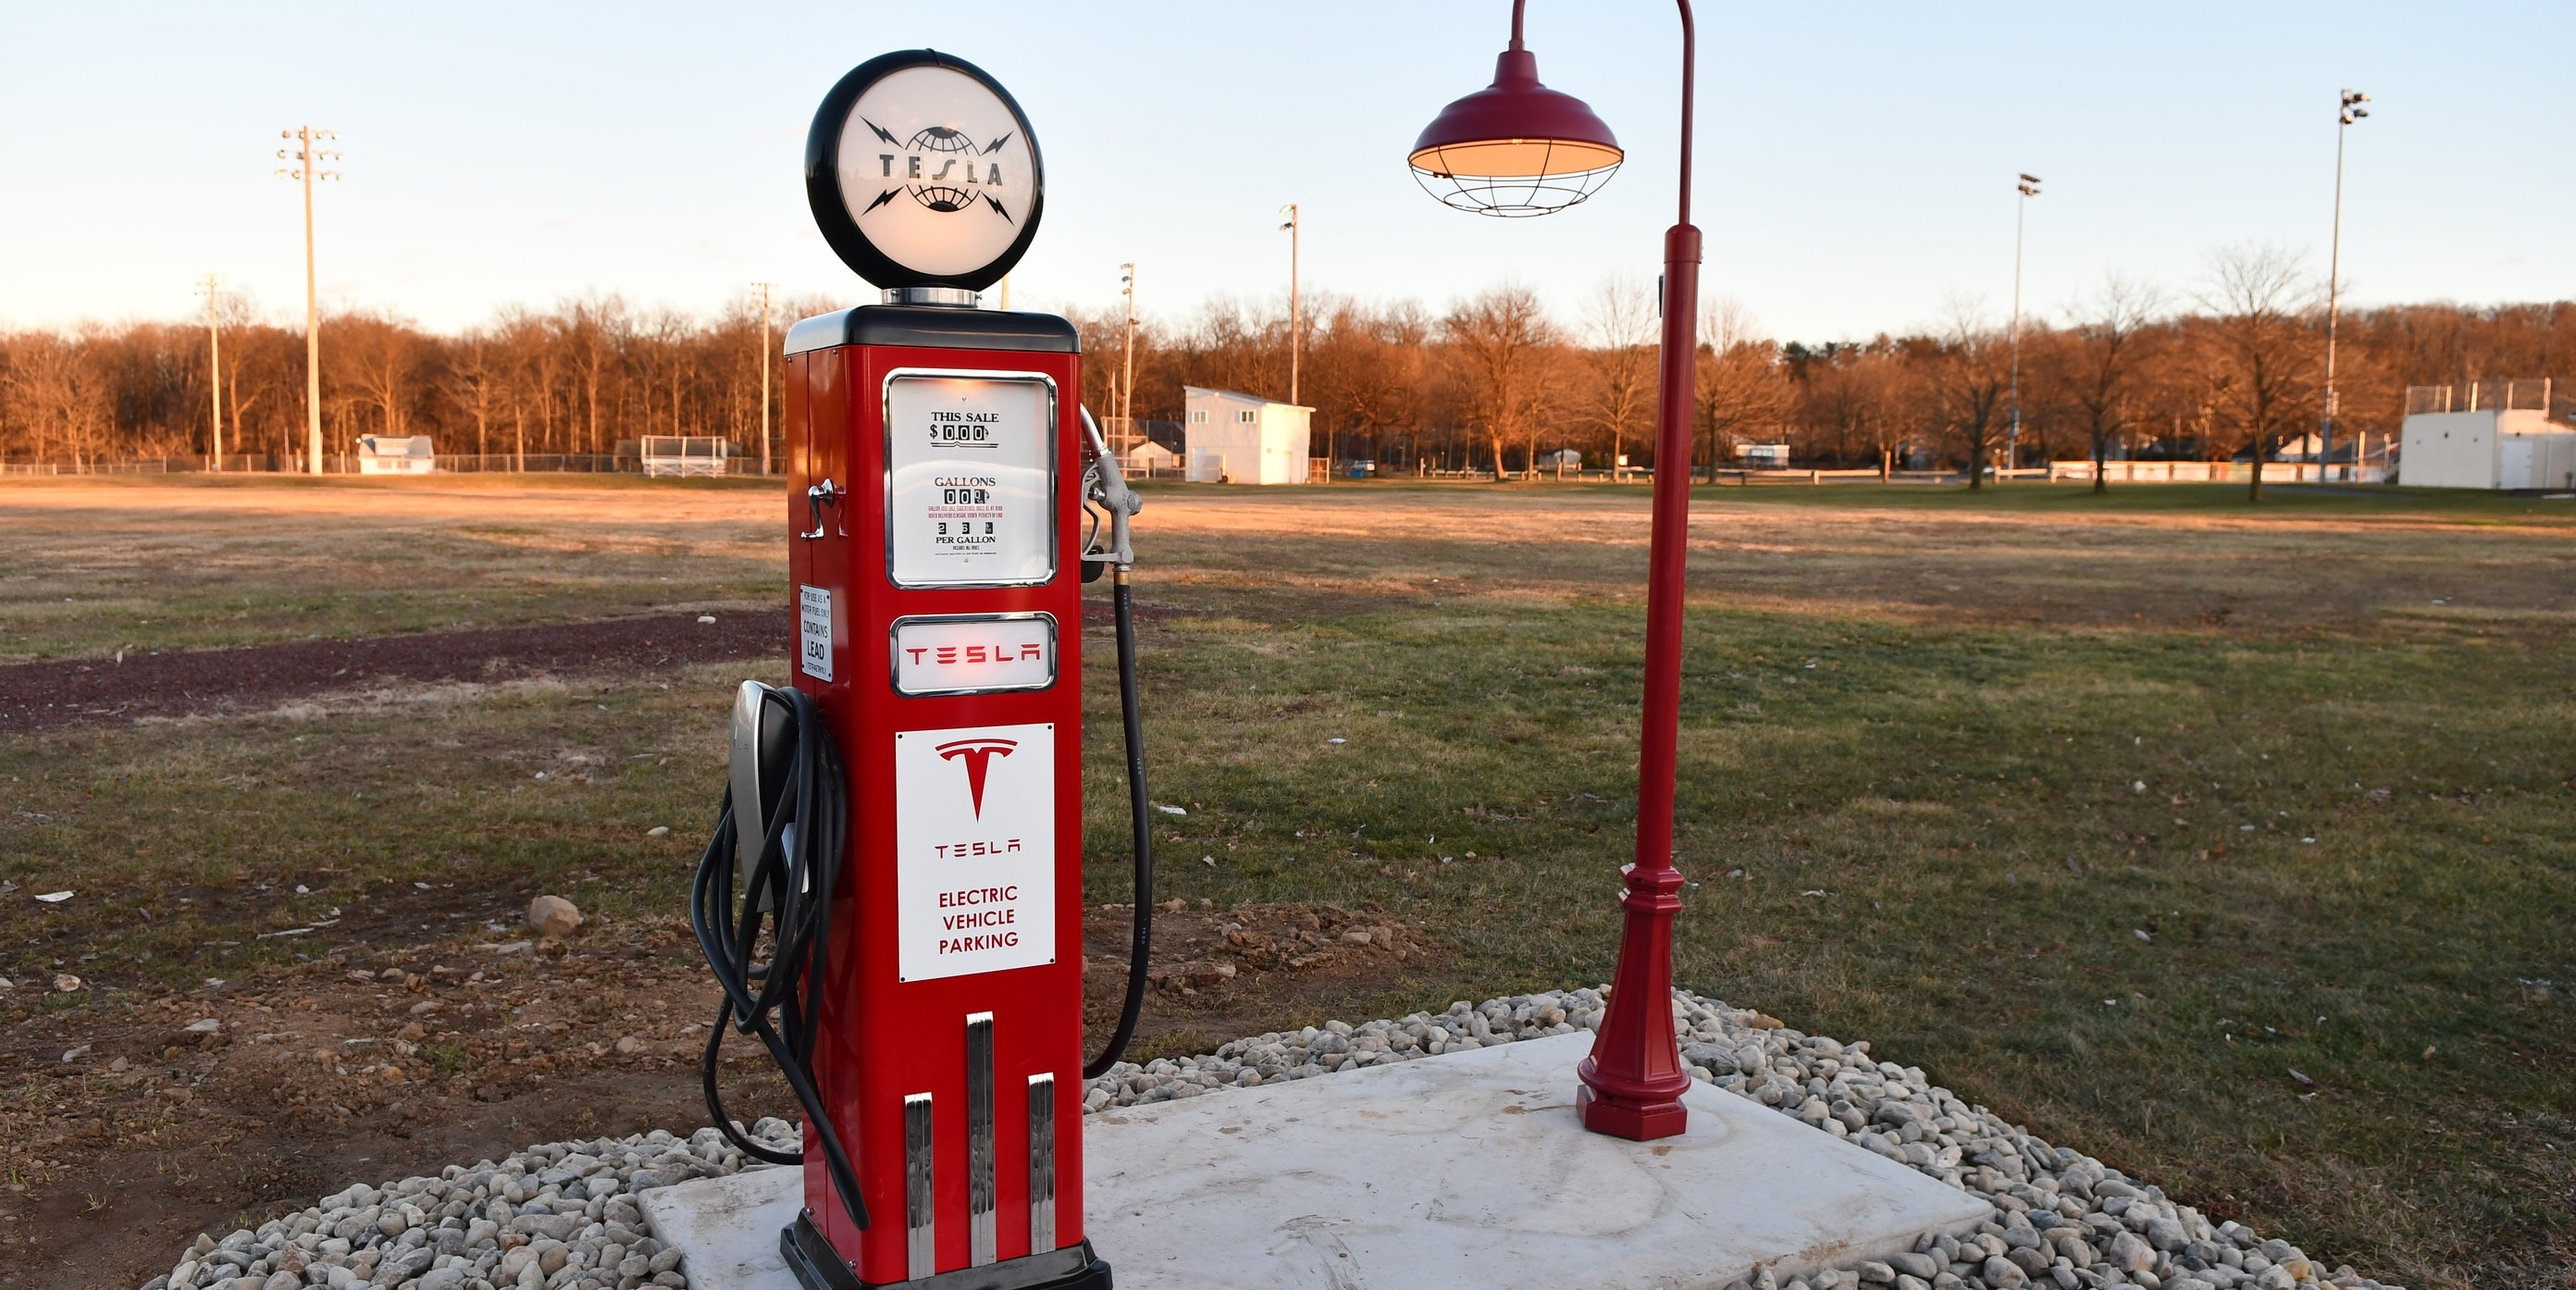 Destination Tesla Chargers Are Capturing the Golden Age of the American Car